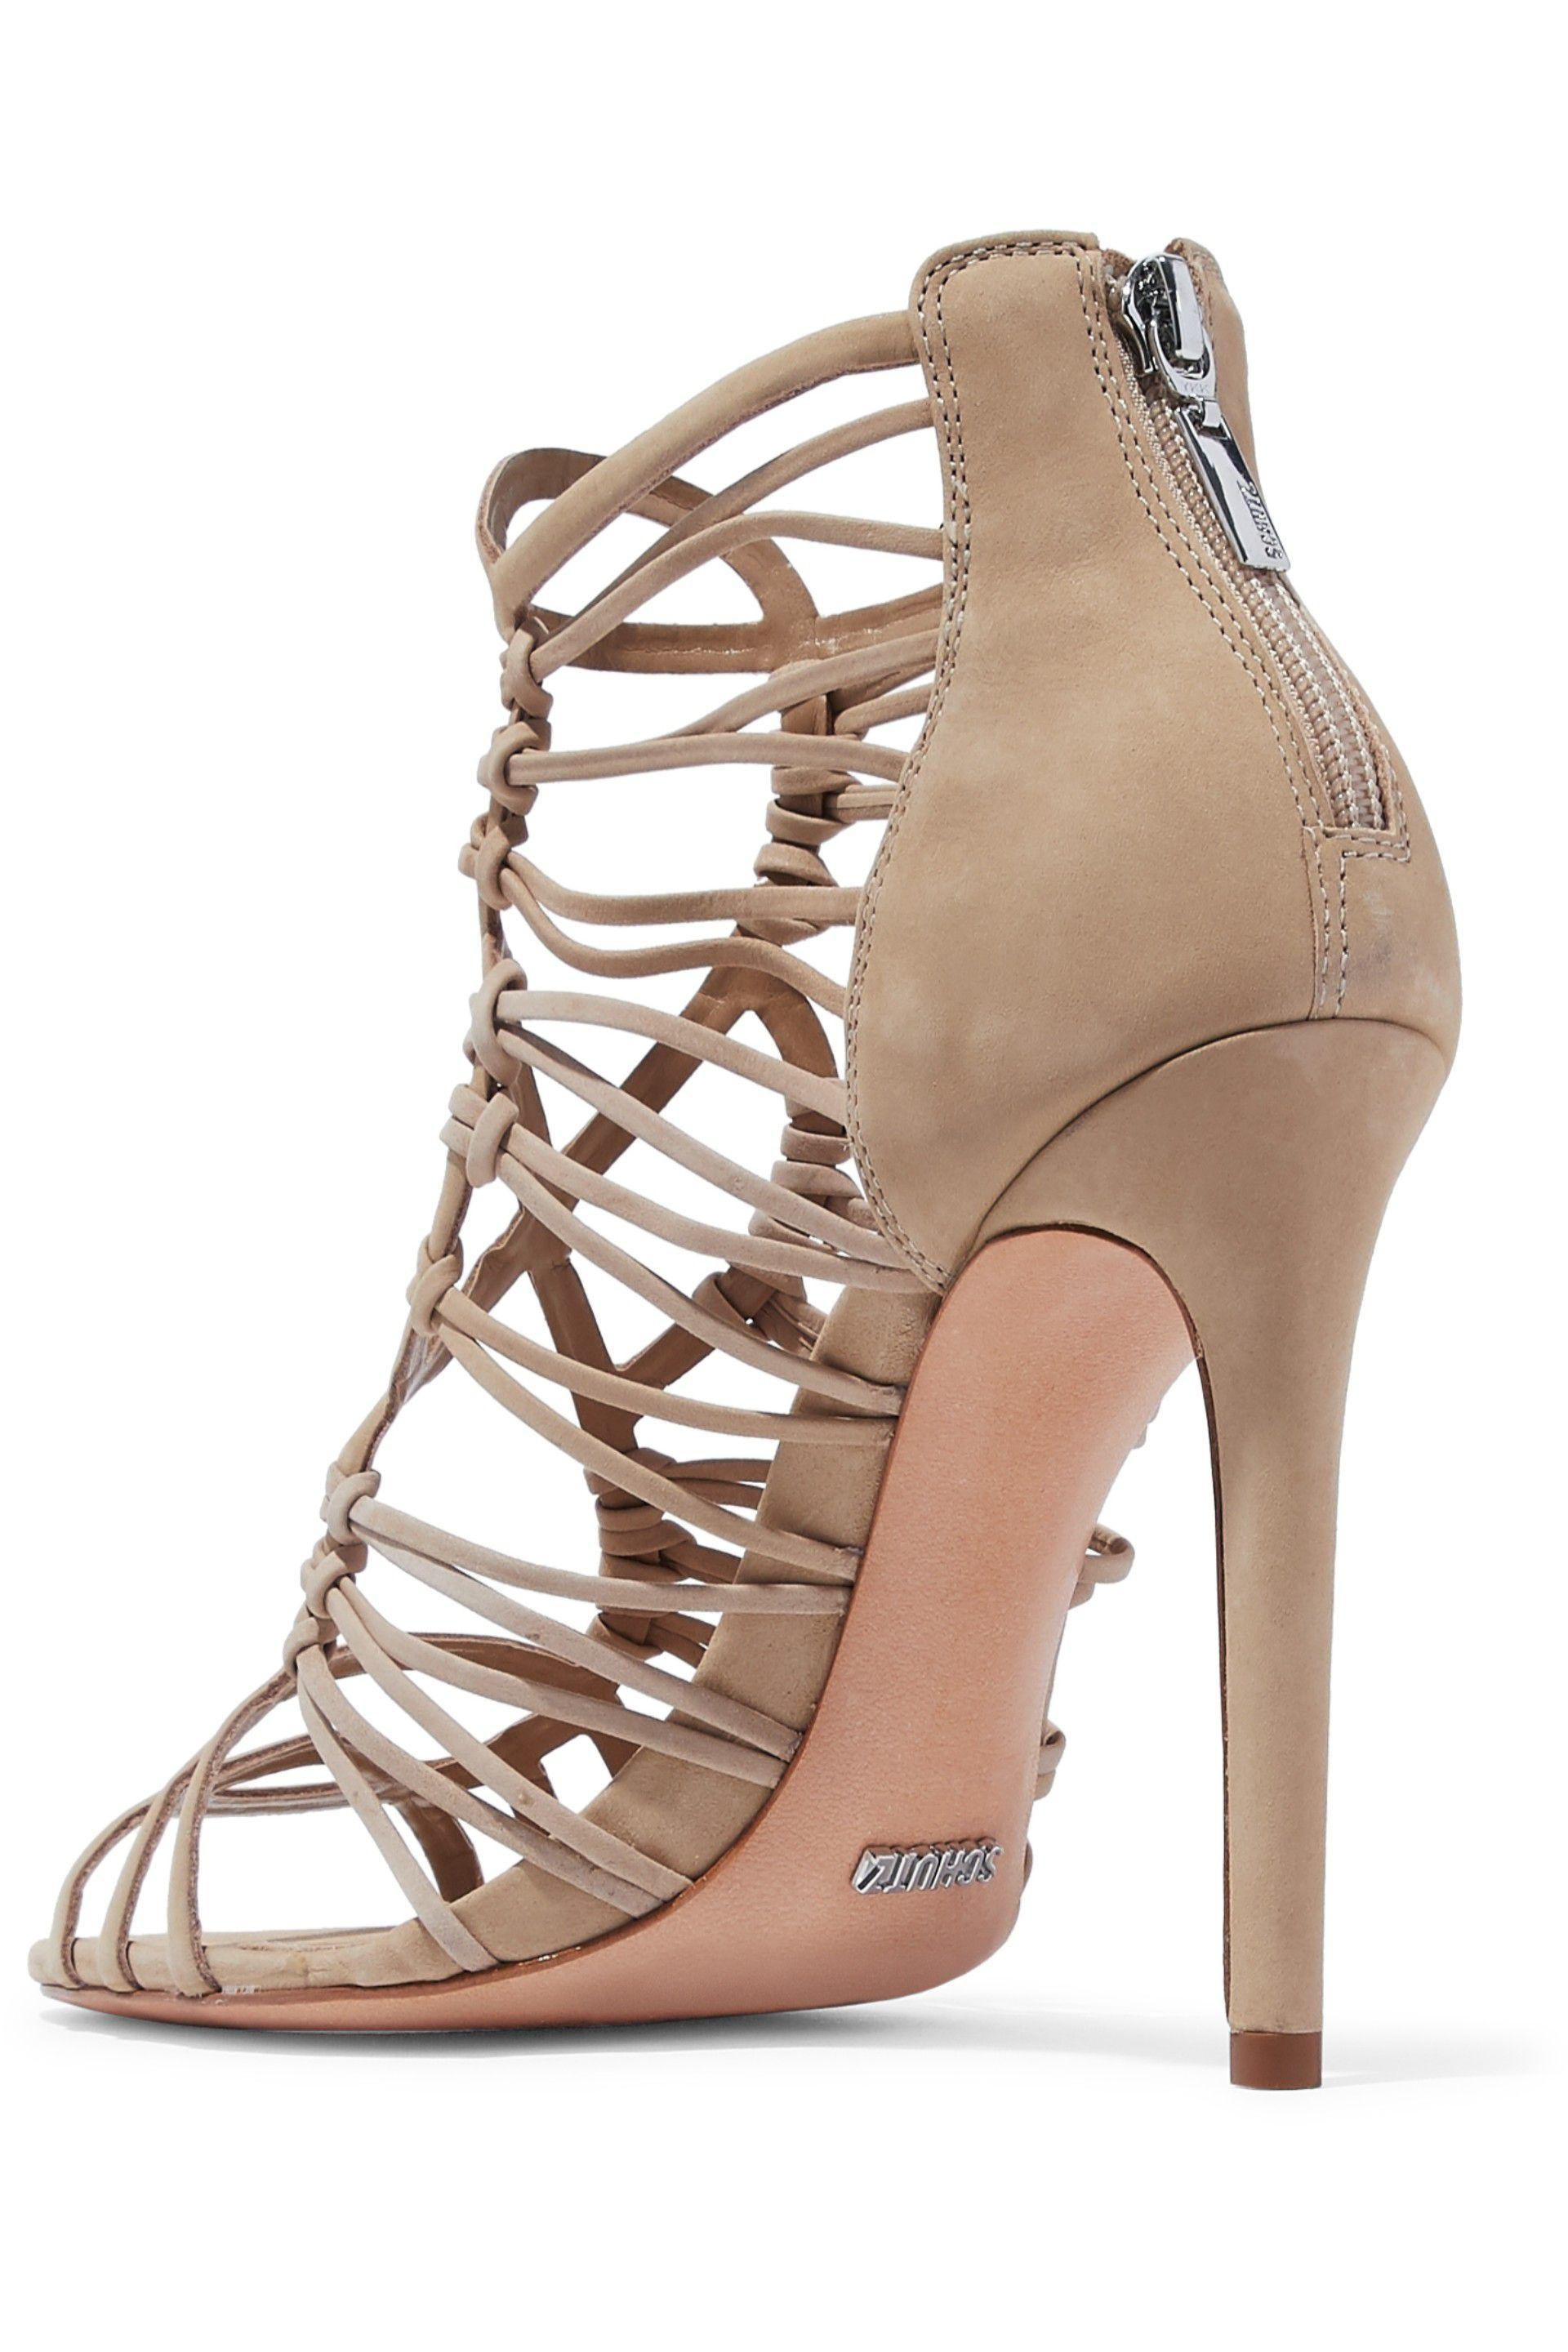 05f0fd845e91d2 Lyst - Schutz Woman Naama Cutout Nubuck Sandals Beige in Natural